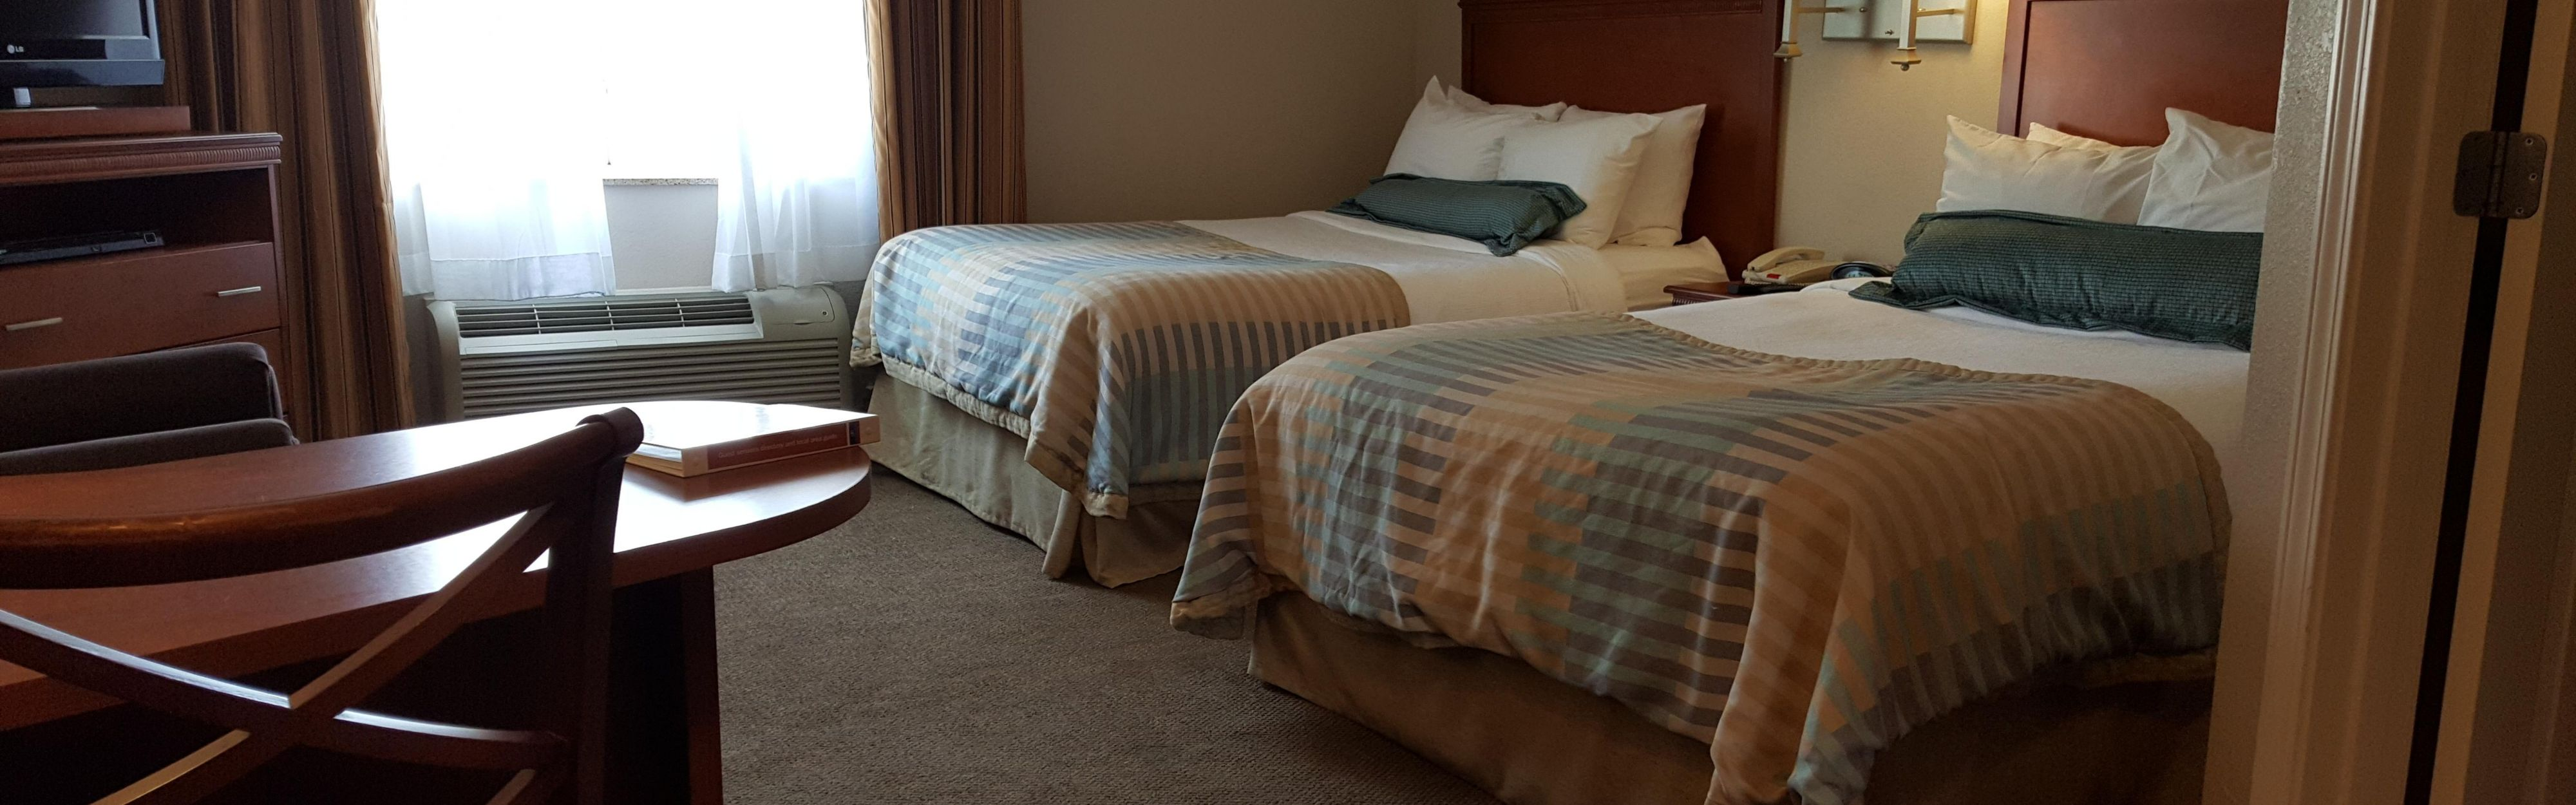 Candlewood Suites Hot Springs image 1